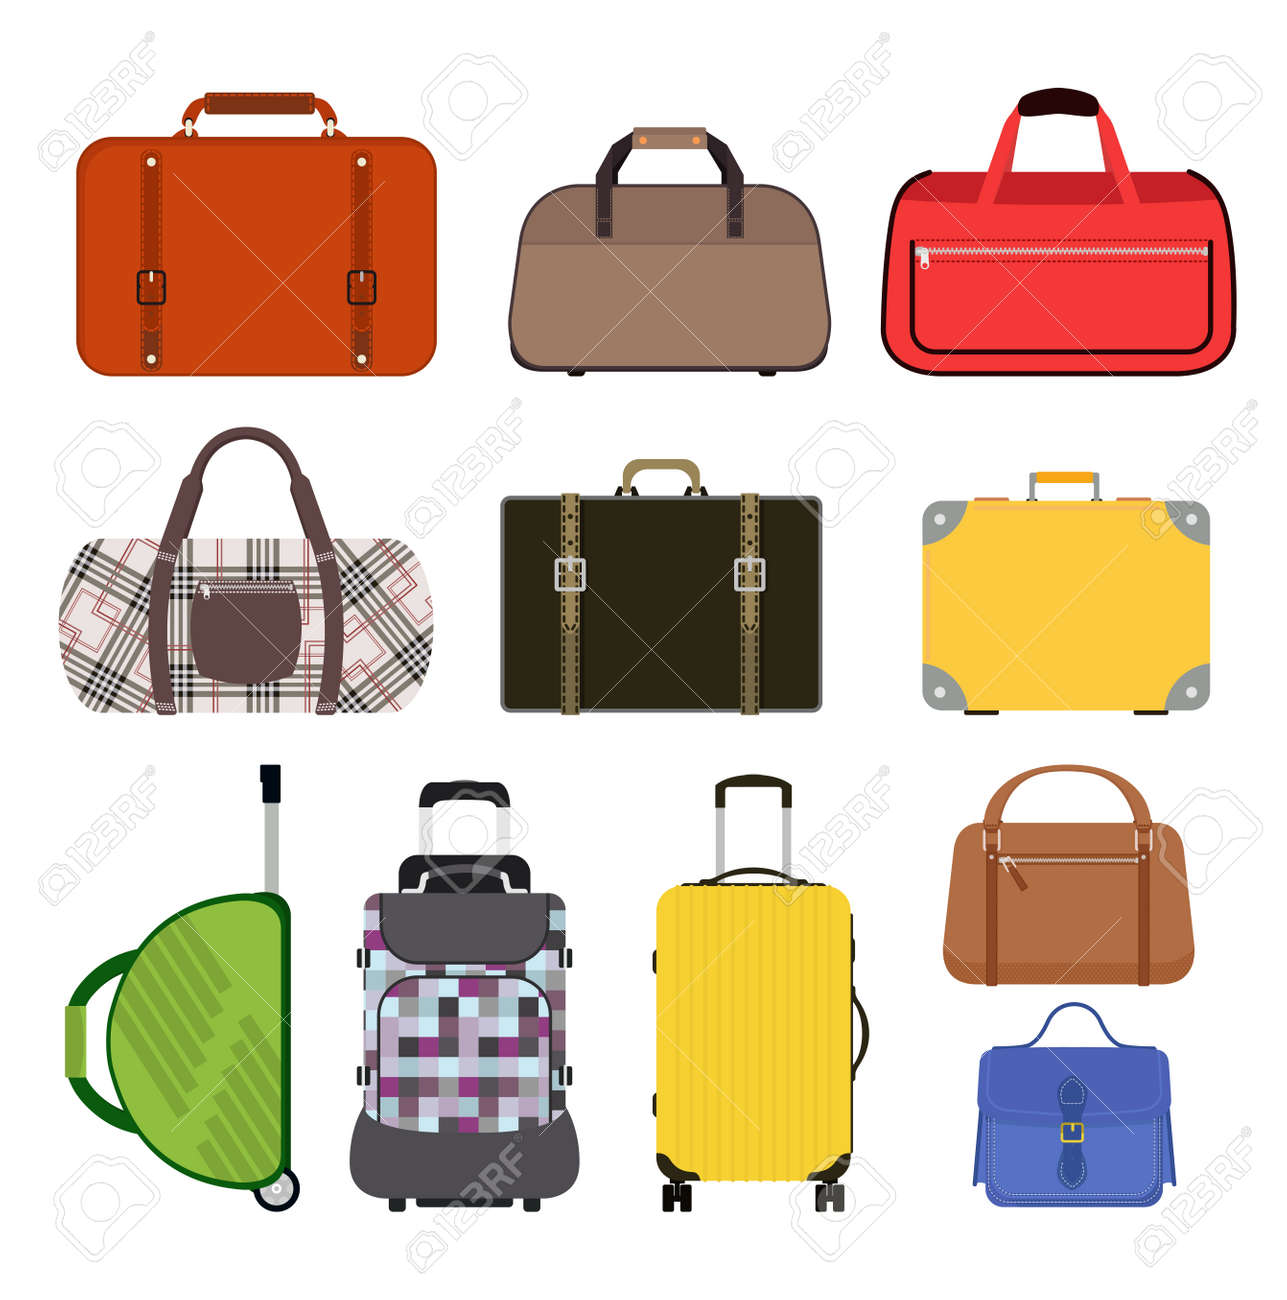 travel bag vector illustration icons collection travel bags rh 123rf com bag victoria's secret bag vector logo